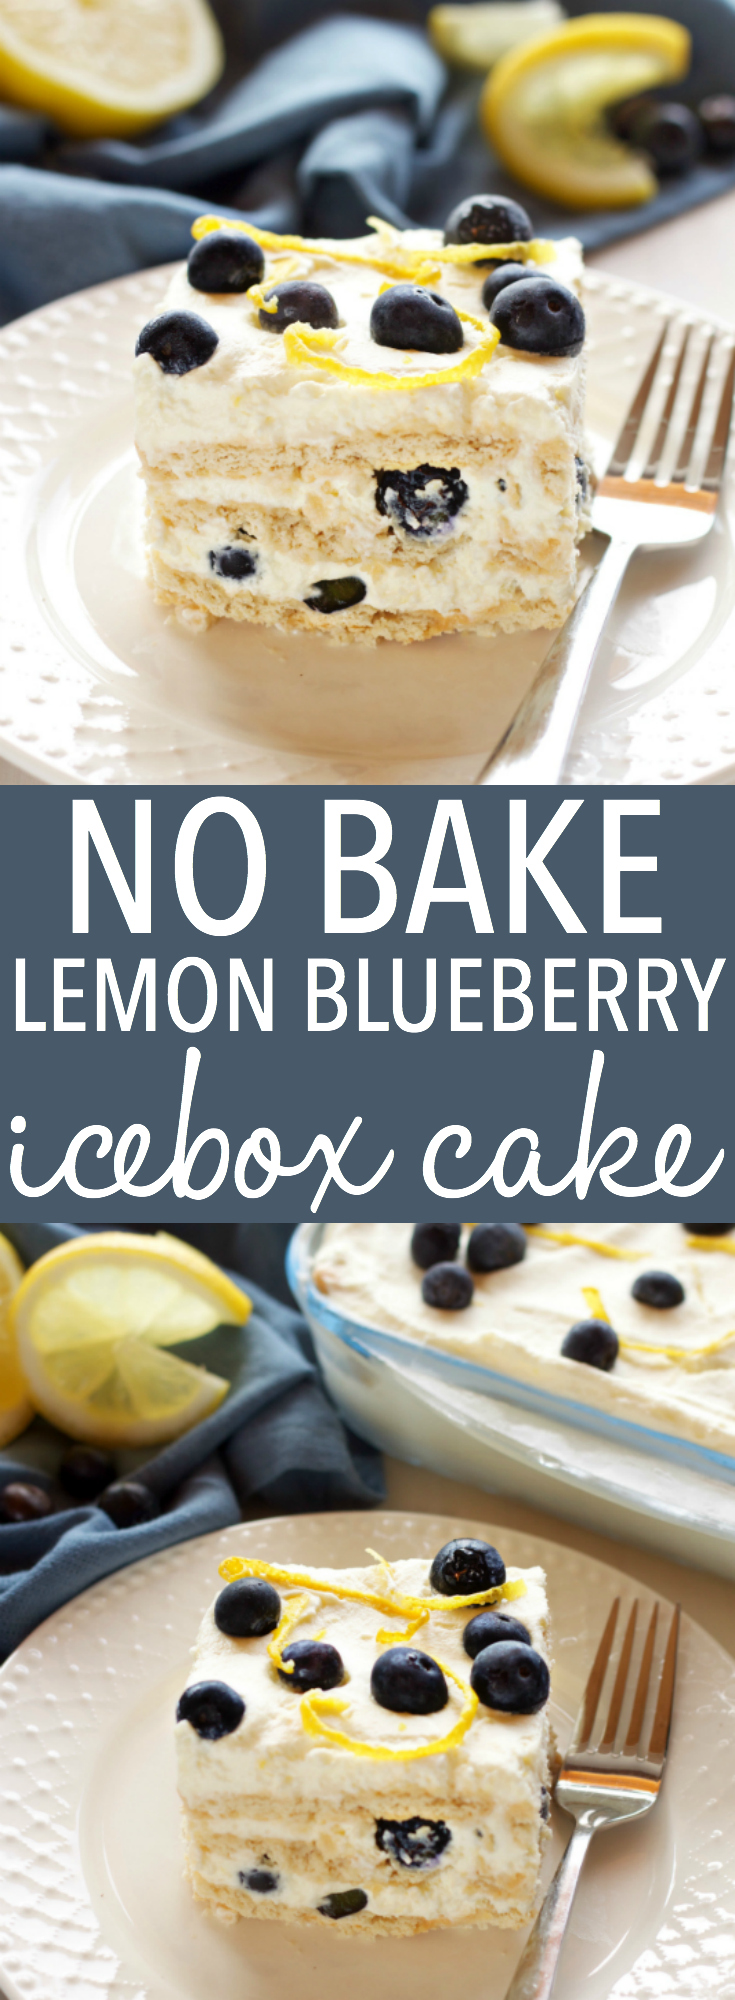 This No Bake Lemon Blueberry Icebox Cake is the perfect summer dessert made from only 5 simple ingredients, featuring a creamy, sweet lemon filling and fresh, juicy blueberries! Recipe from thebusybaker.ca! via @busybakerblog